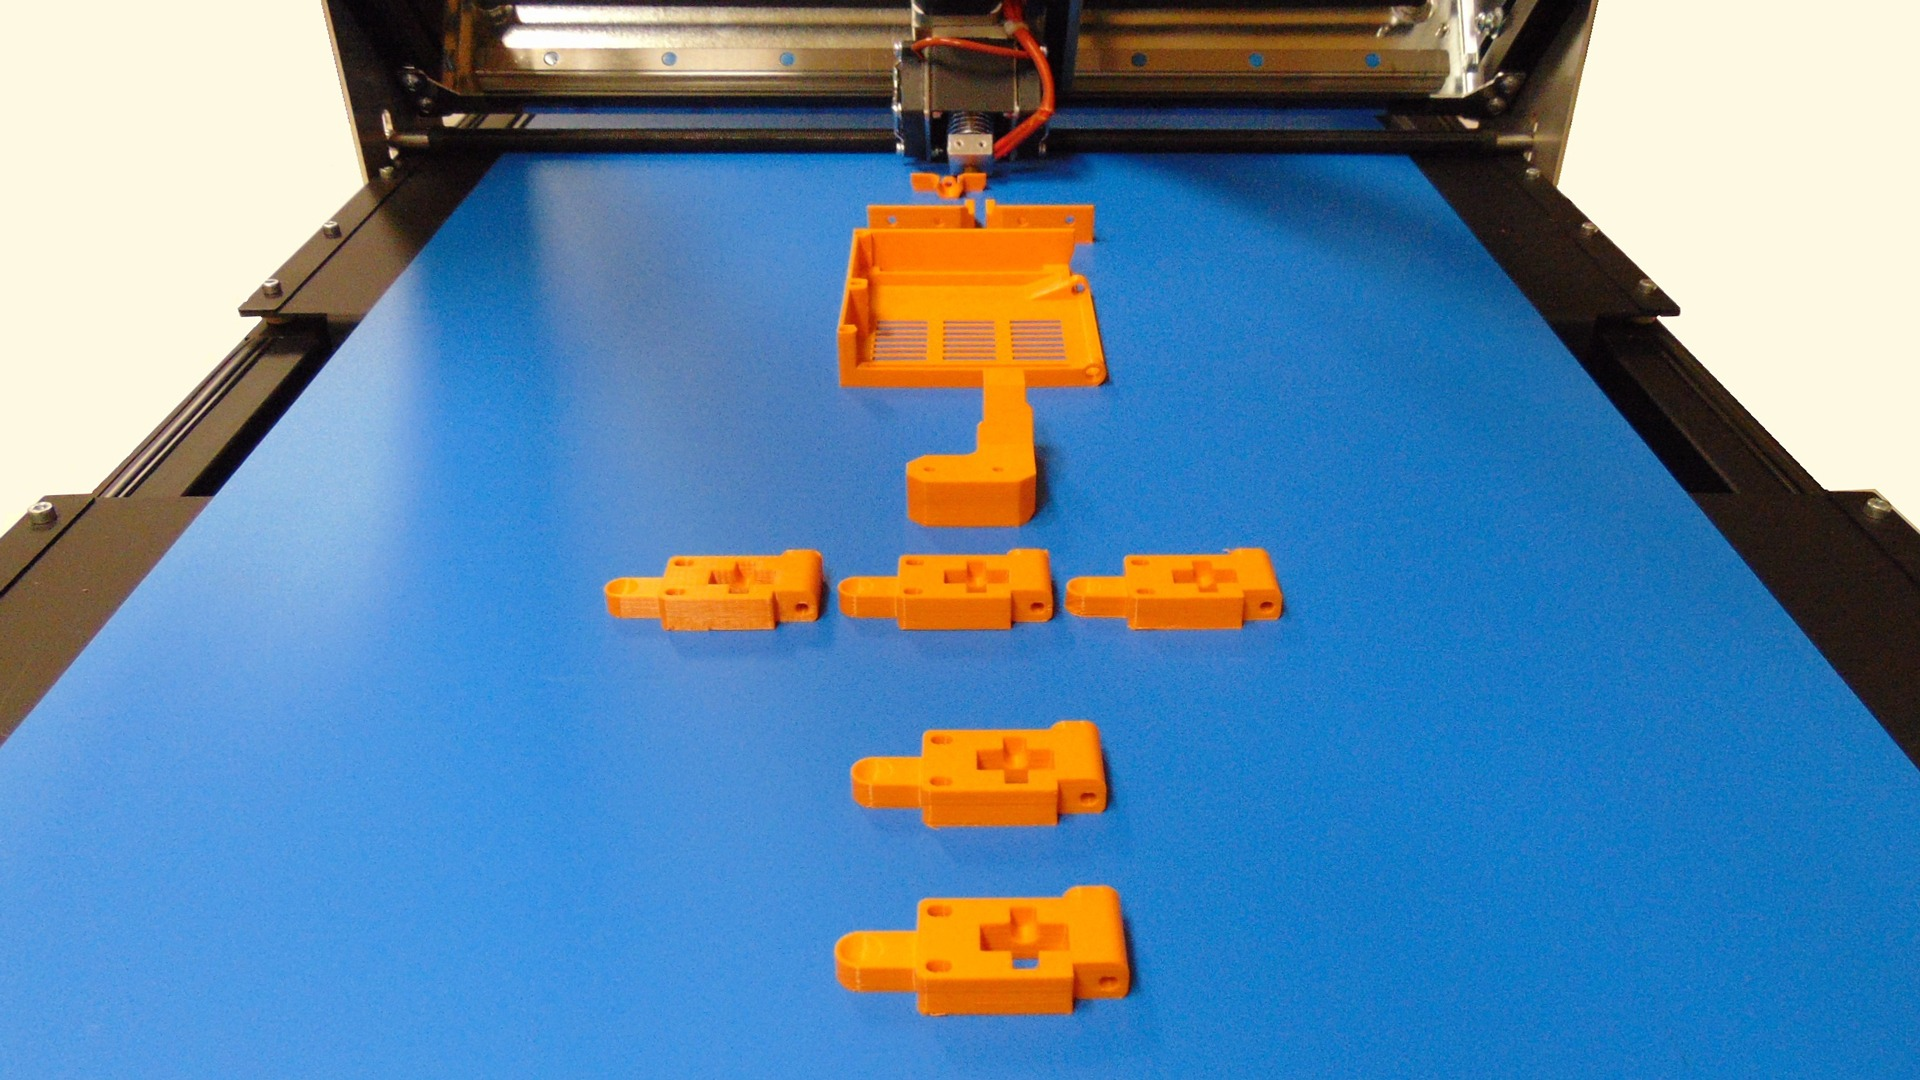 something interesting about continuous 3d printing solidsmacksomething interesting about continuous 3d printing